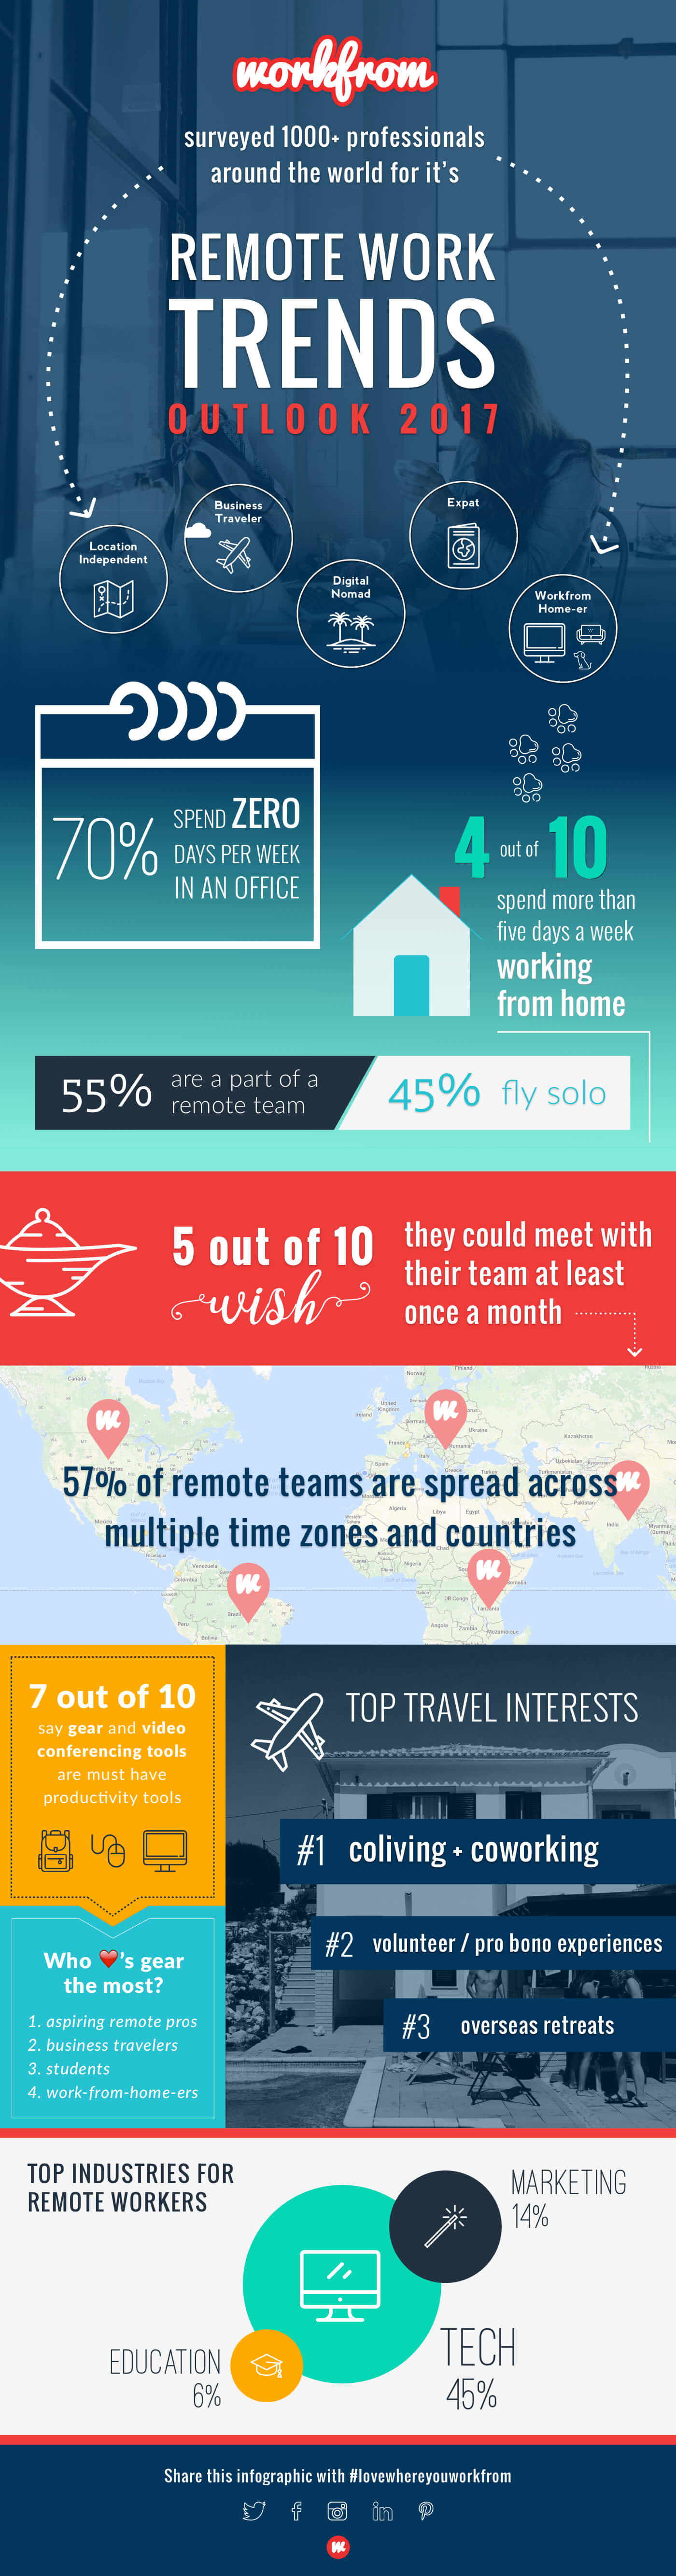 Workfrom Remote Work Trends Outlook 2017